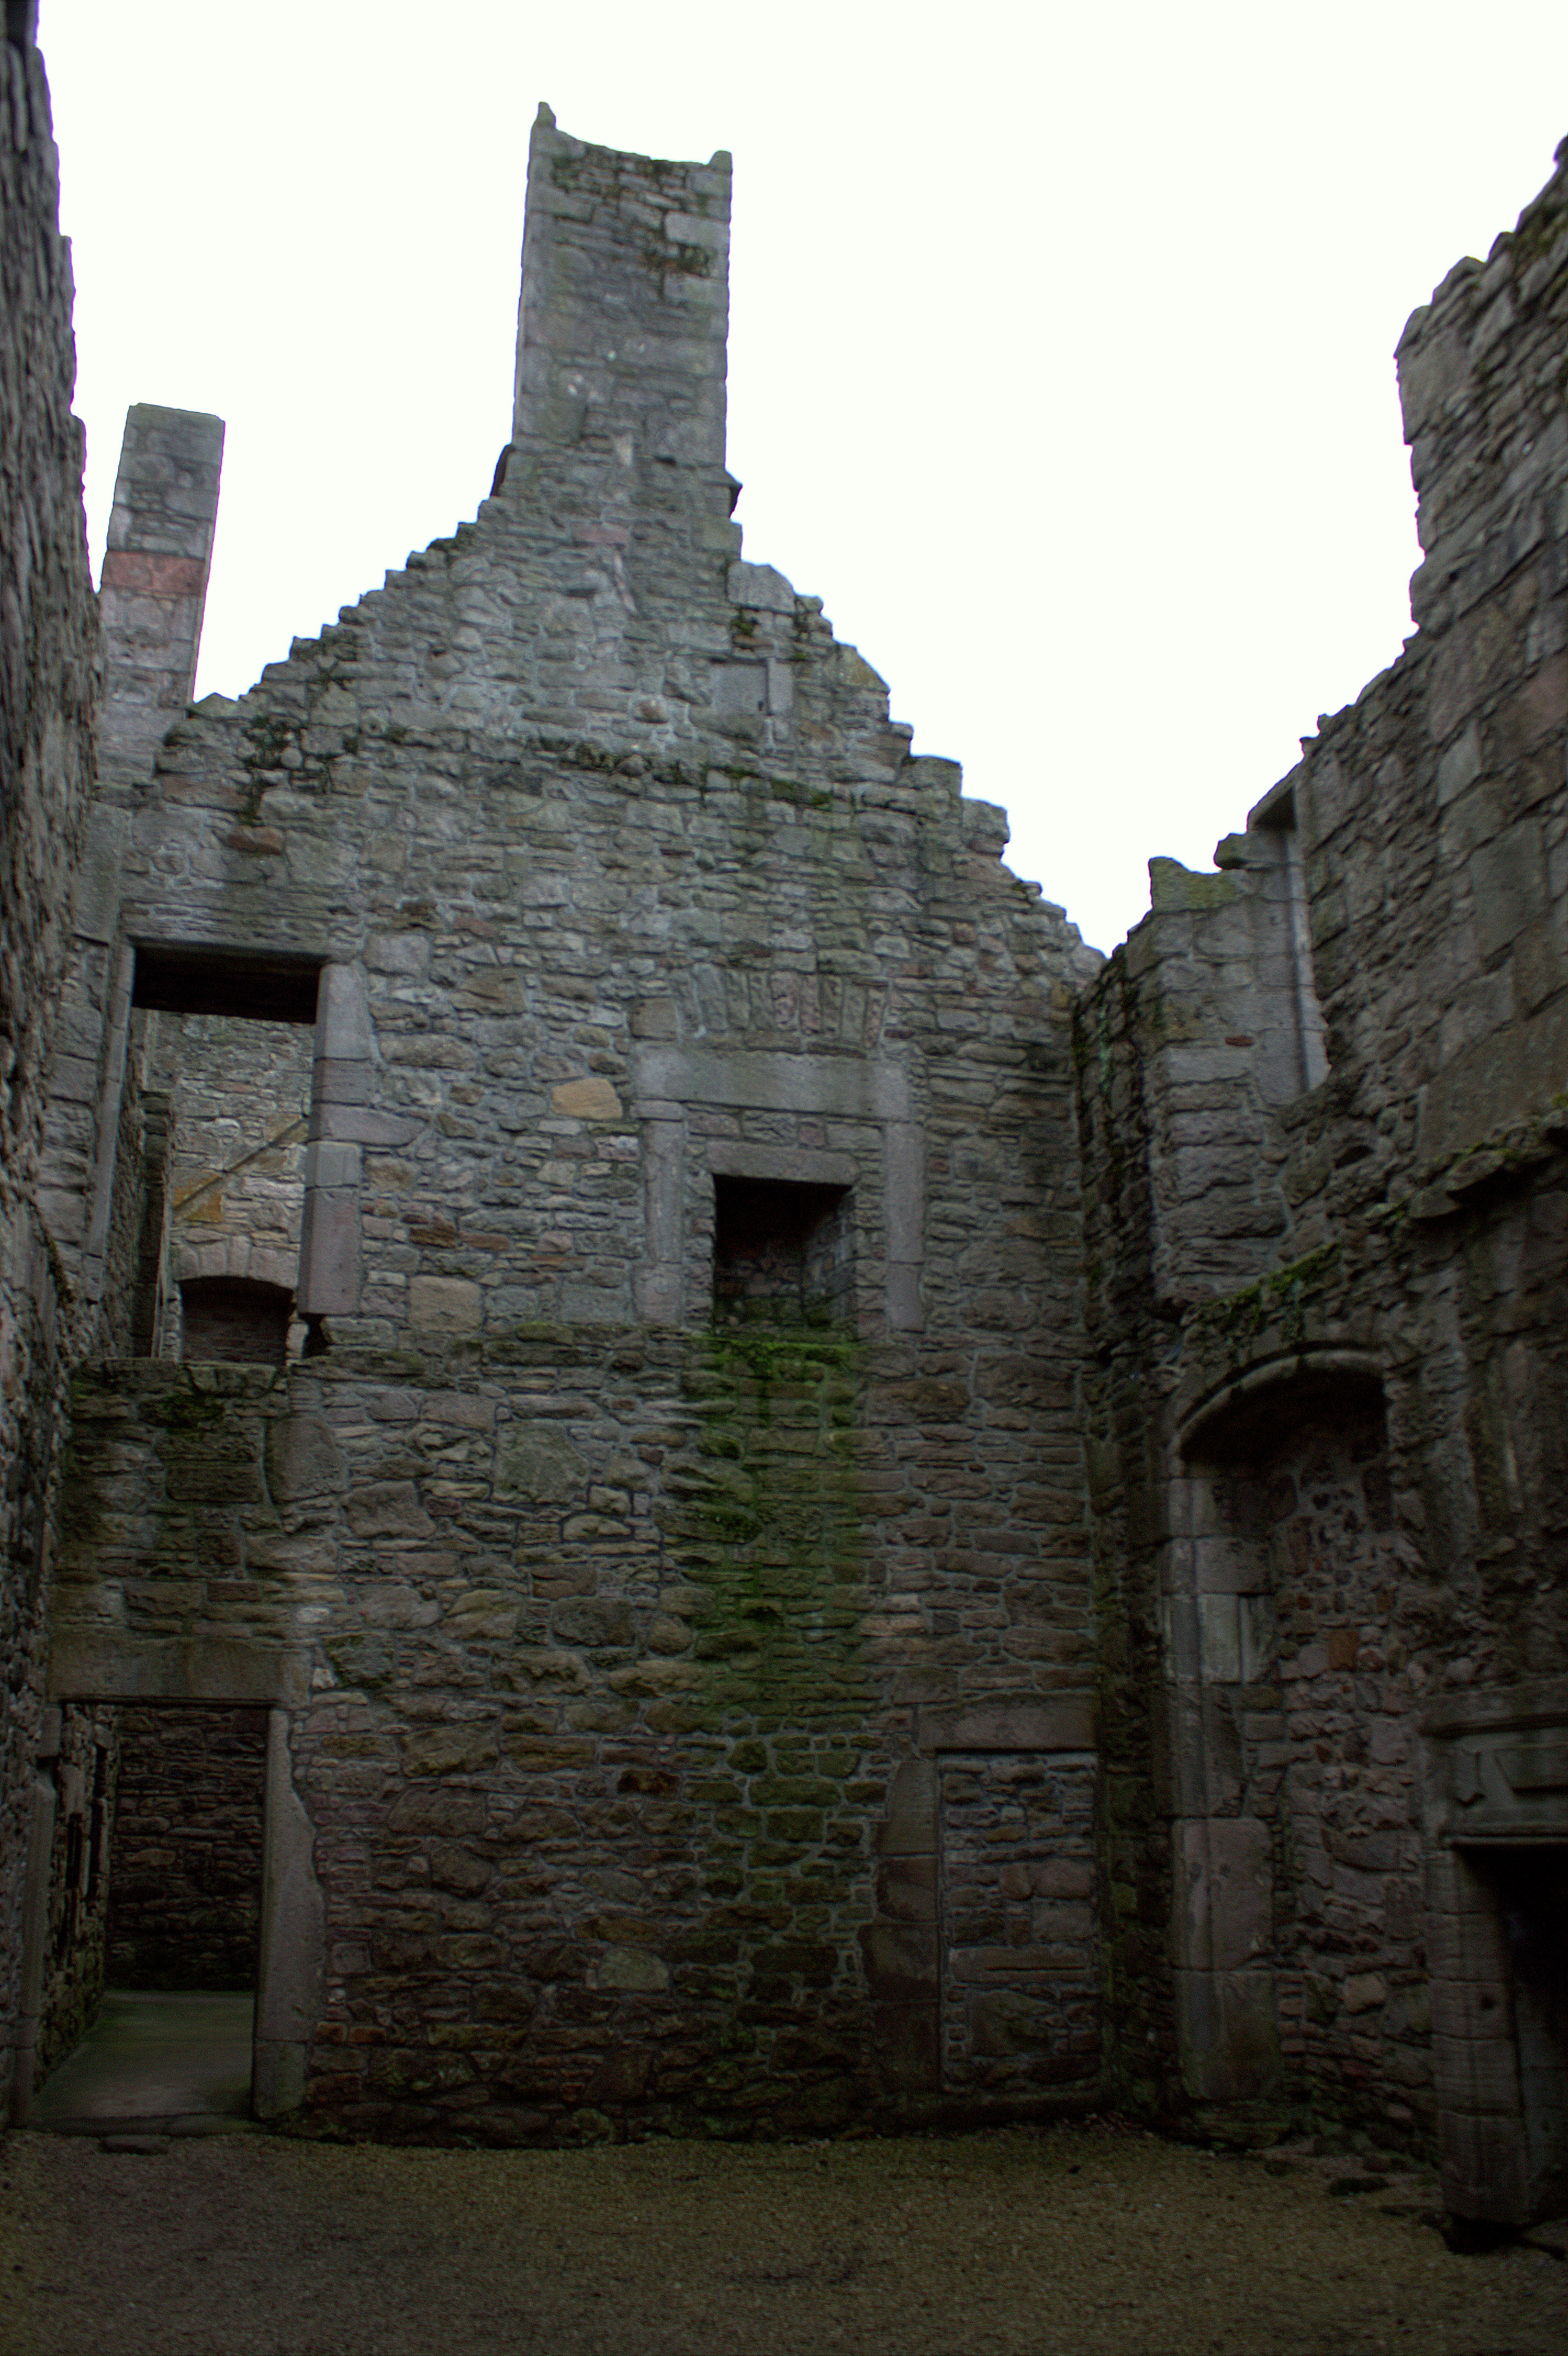 08. Craigmillar Castle, Edinburgh, Scotland